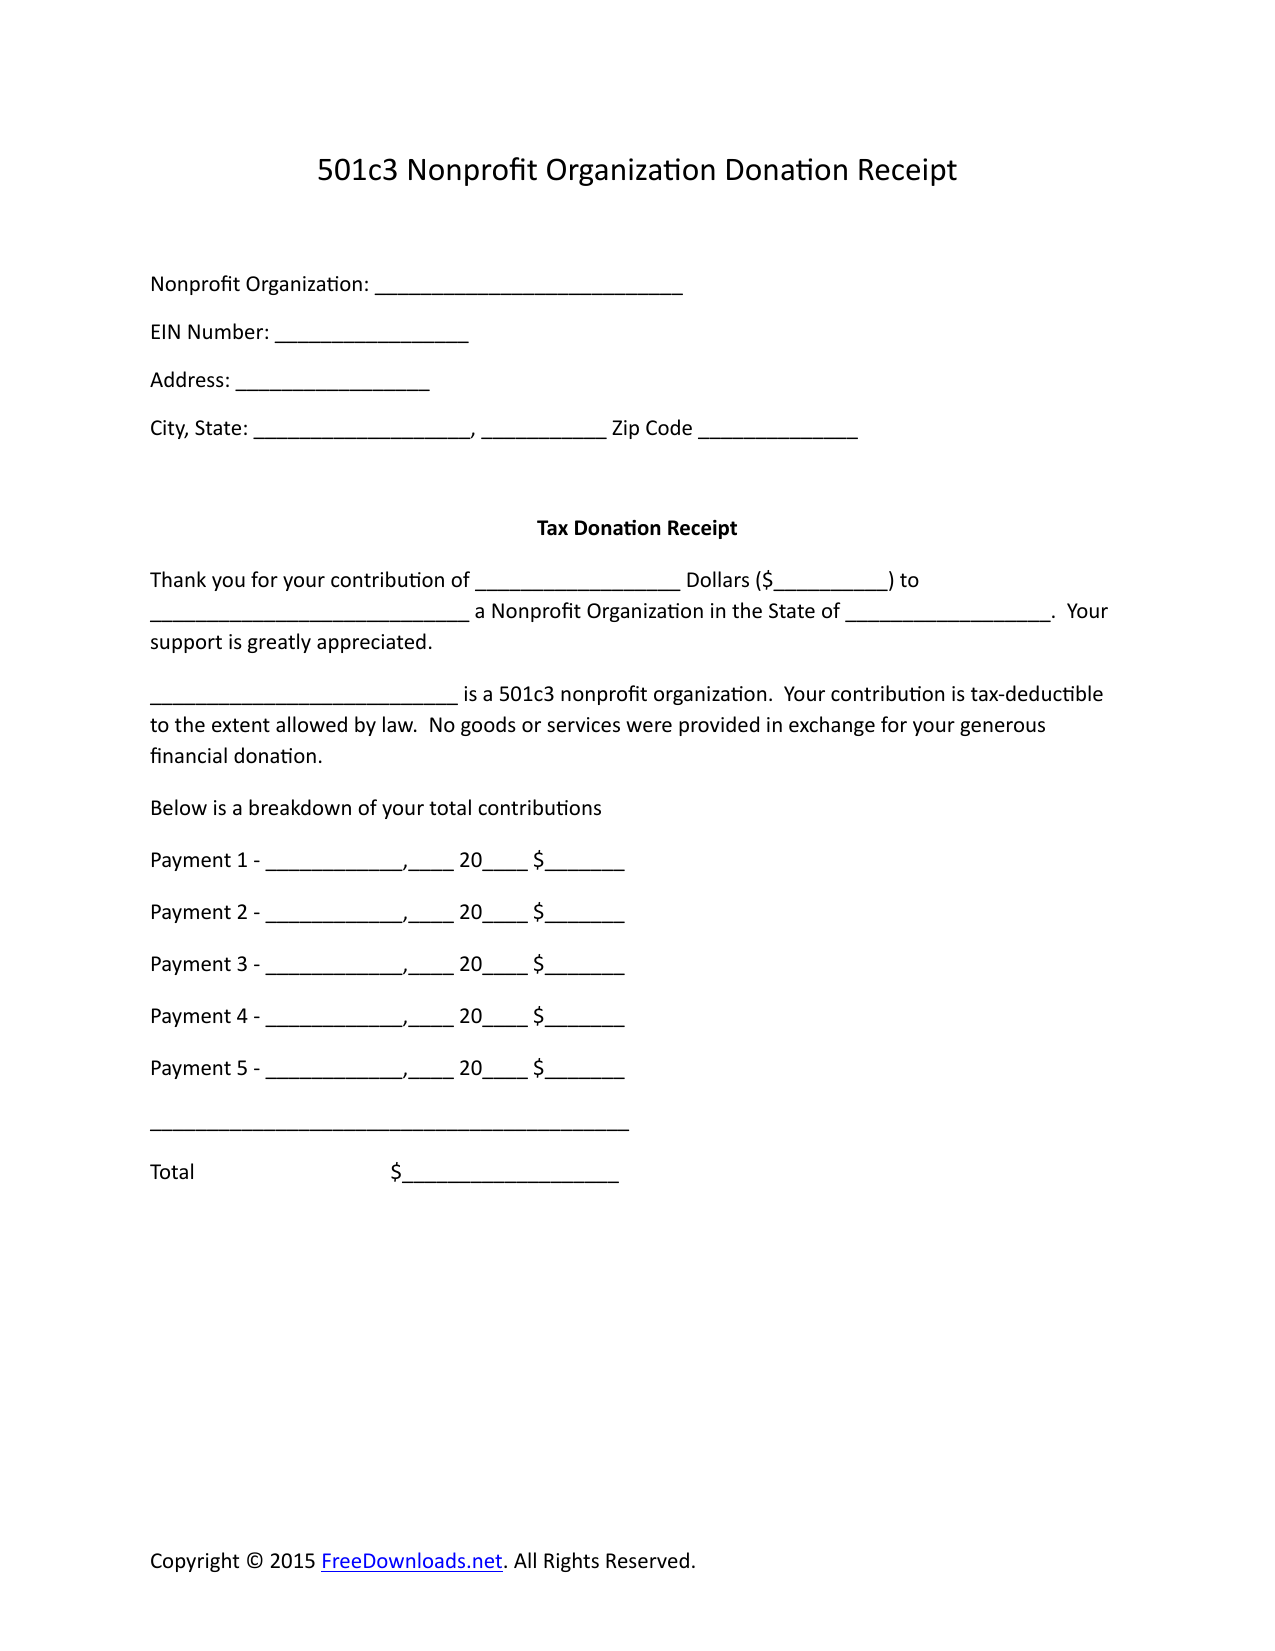 501c3 donation receipt  Download 501c3 Donation Receipt Letter for Tax Purposes | PDF | RTF ...